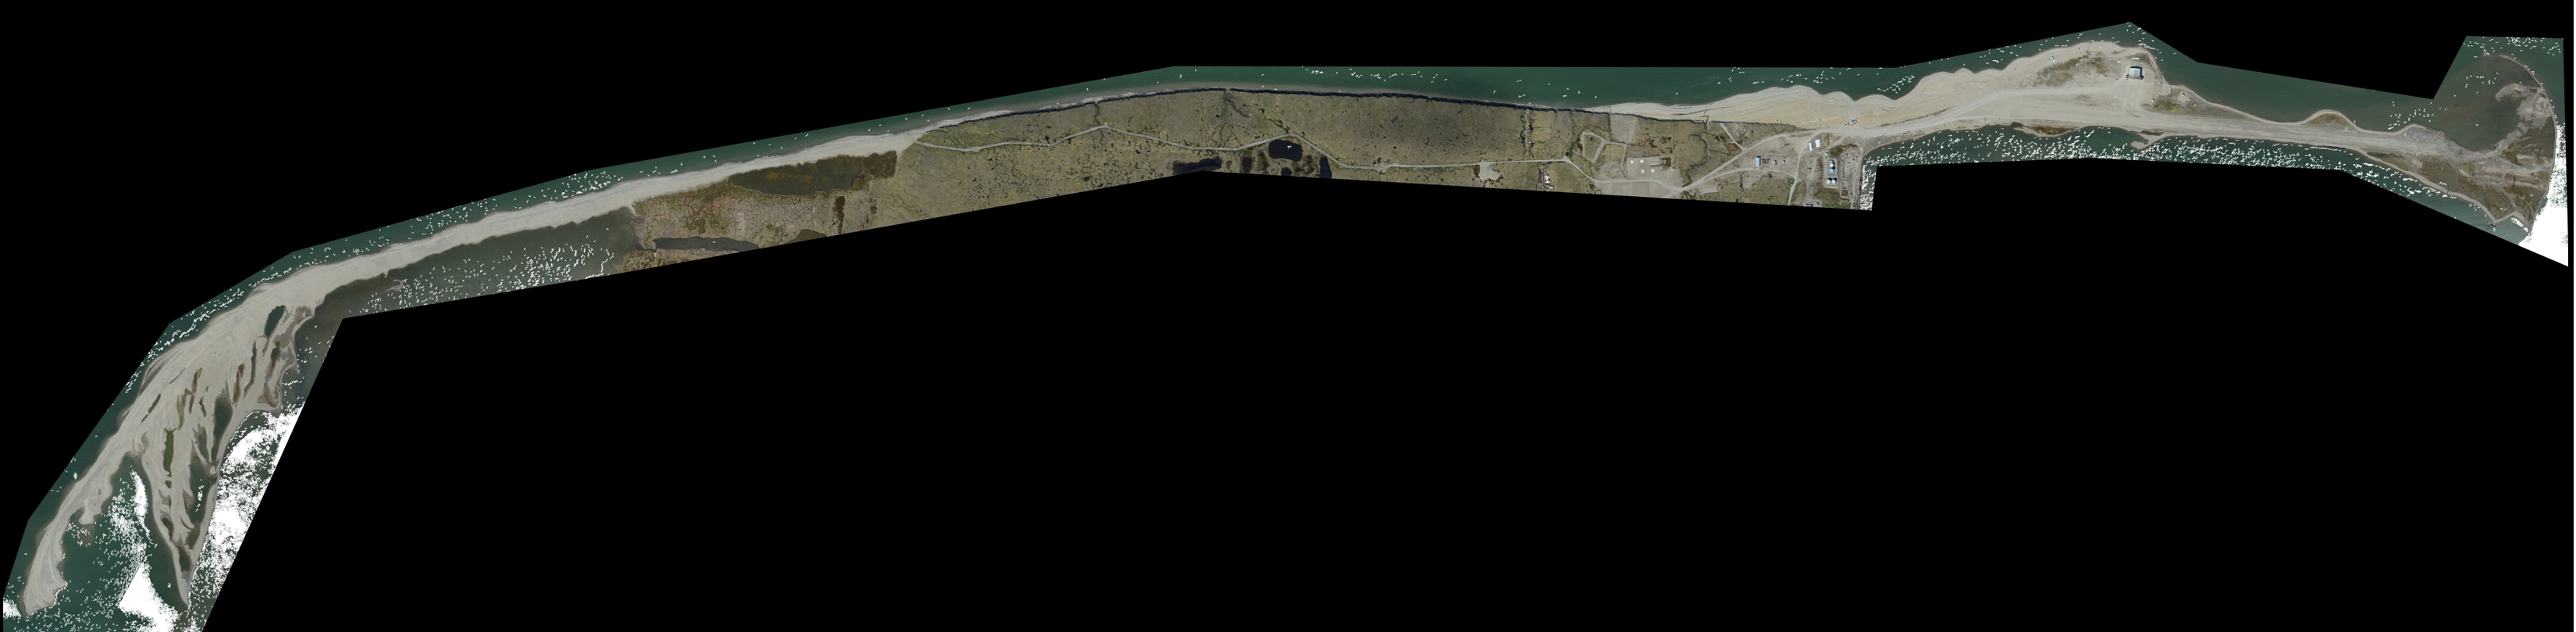 Browse image of the orthomosaic generated from photogrammetry and aerial images acquired over Barter Island, Alaska July 05 2015.